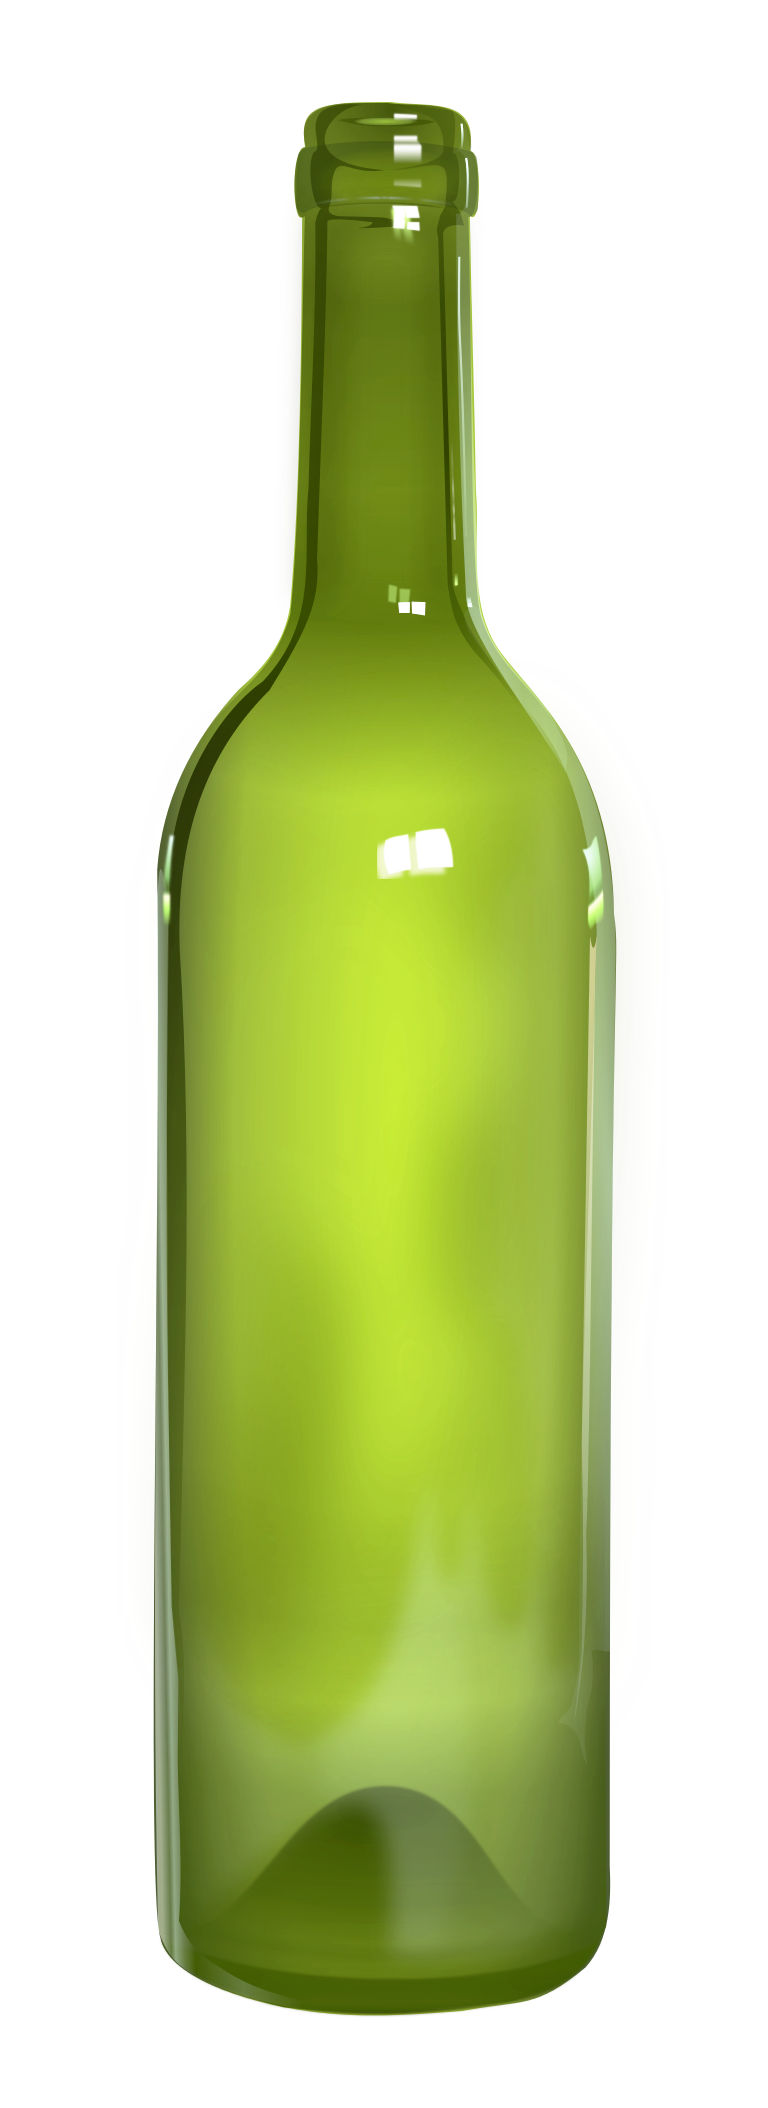 Bottle clipart transparent background, Bottle transparent.